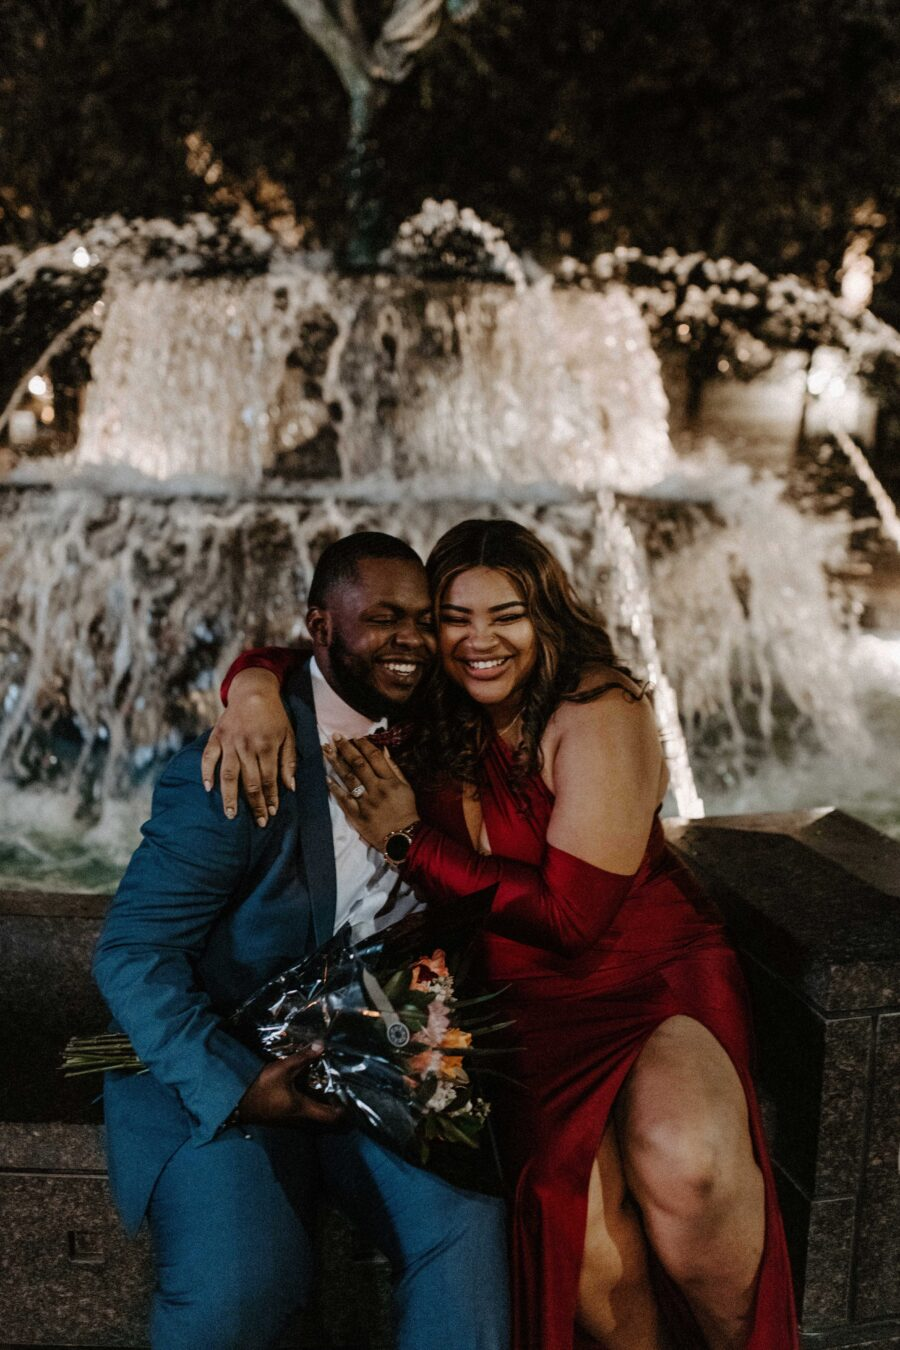 Downtown Nashville Engagement at Symphony Fountain by Meghan Melia Photography | Nashville Bride Guide